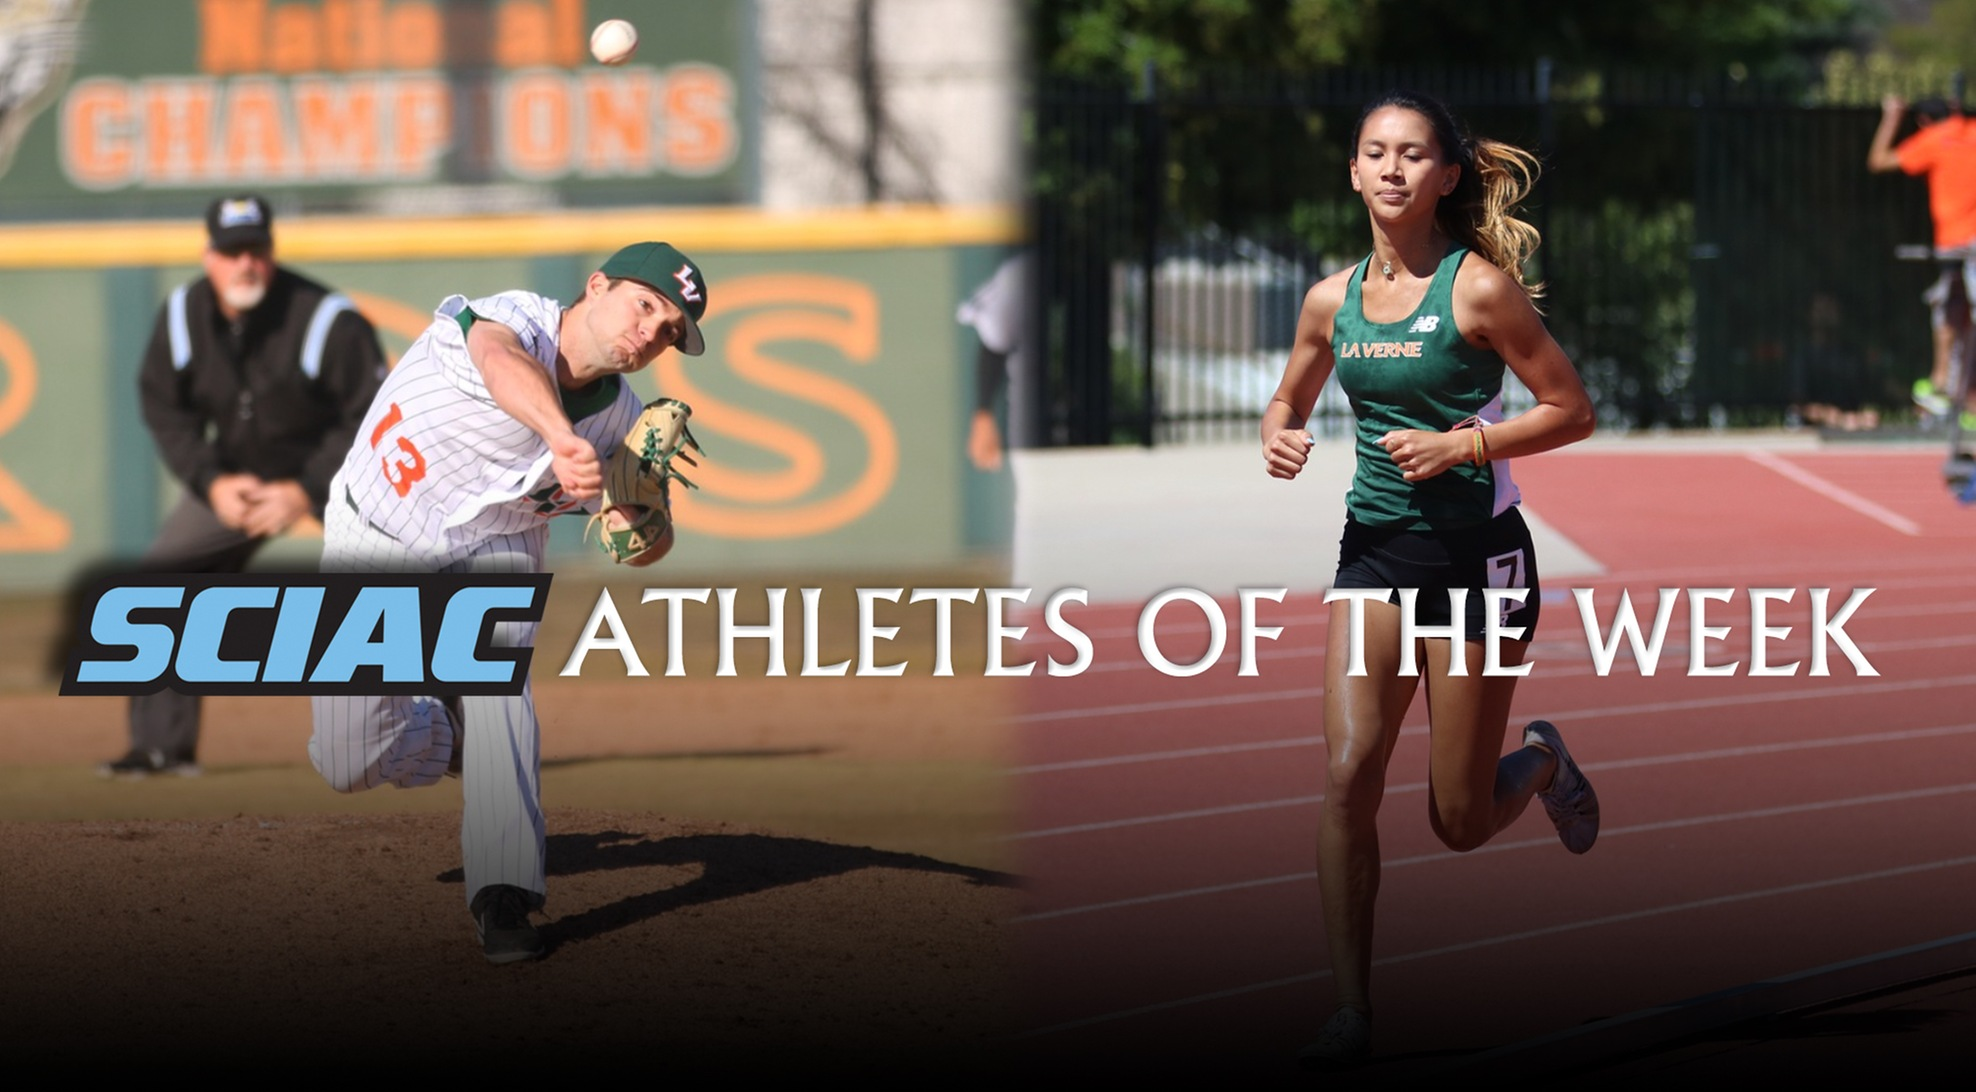 Norman, Cerrillos named SCIAC Athletes of the Week